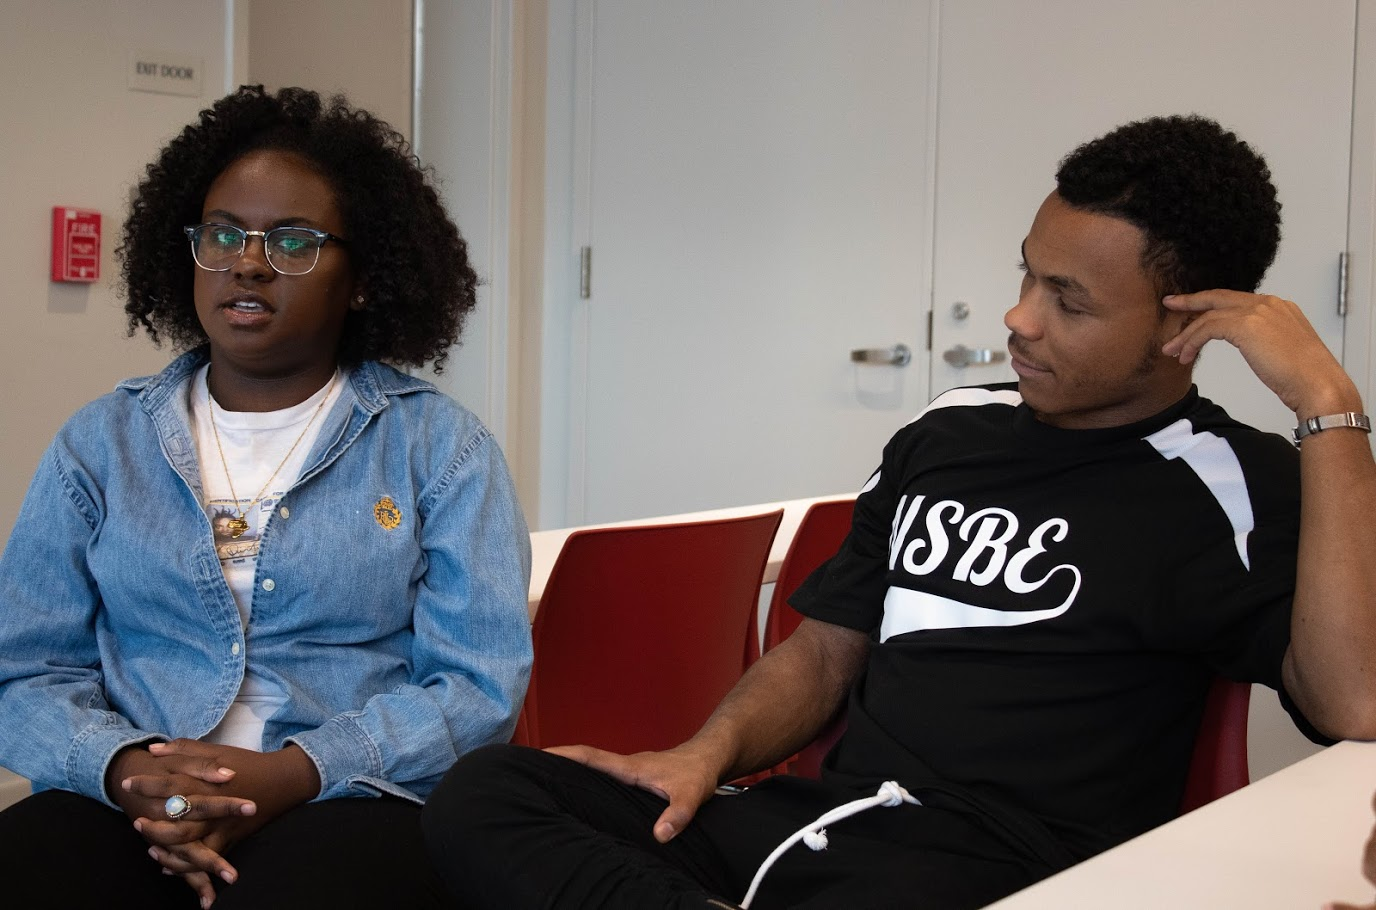 Kayla Stewart, sophomore in LAS, and Haki Shabazz Materre, senior in AHS, being interviewed at the Bruce D. Nesbitt African American Cultural Center on Friday. A report for the 2018-19 academic year showed 475 African American students enrolled in the University last fall.